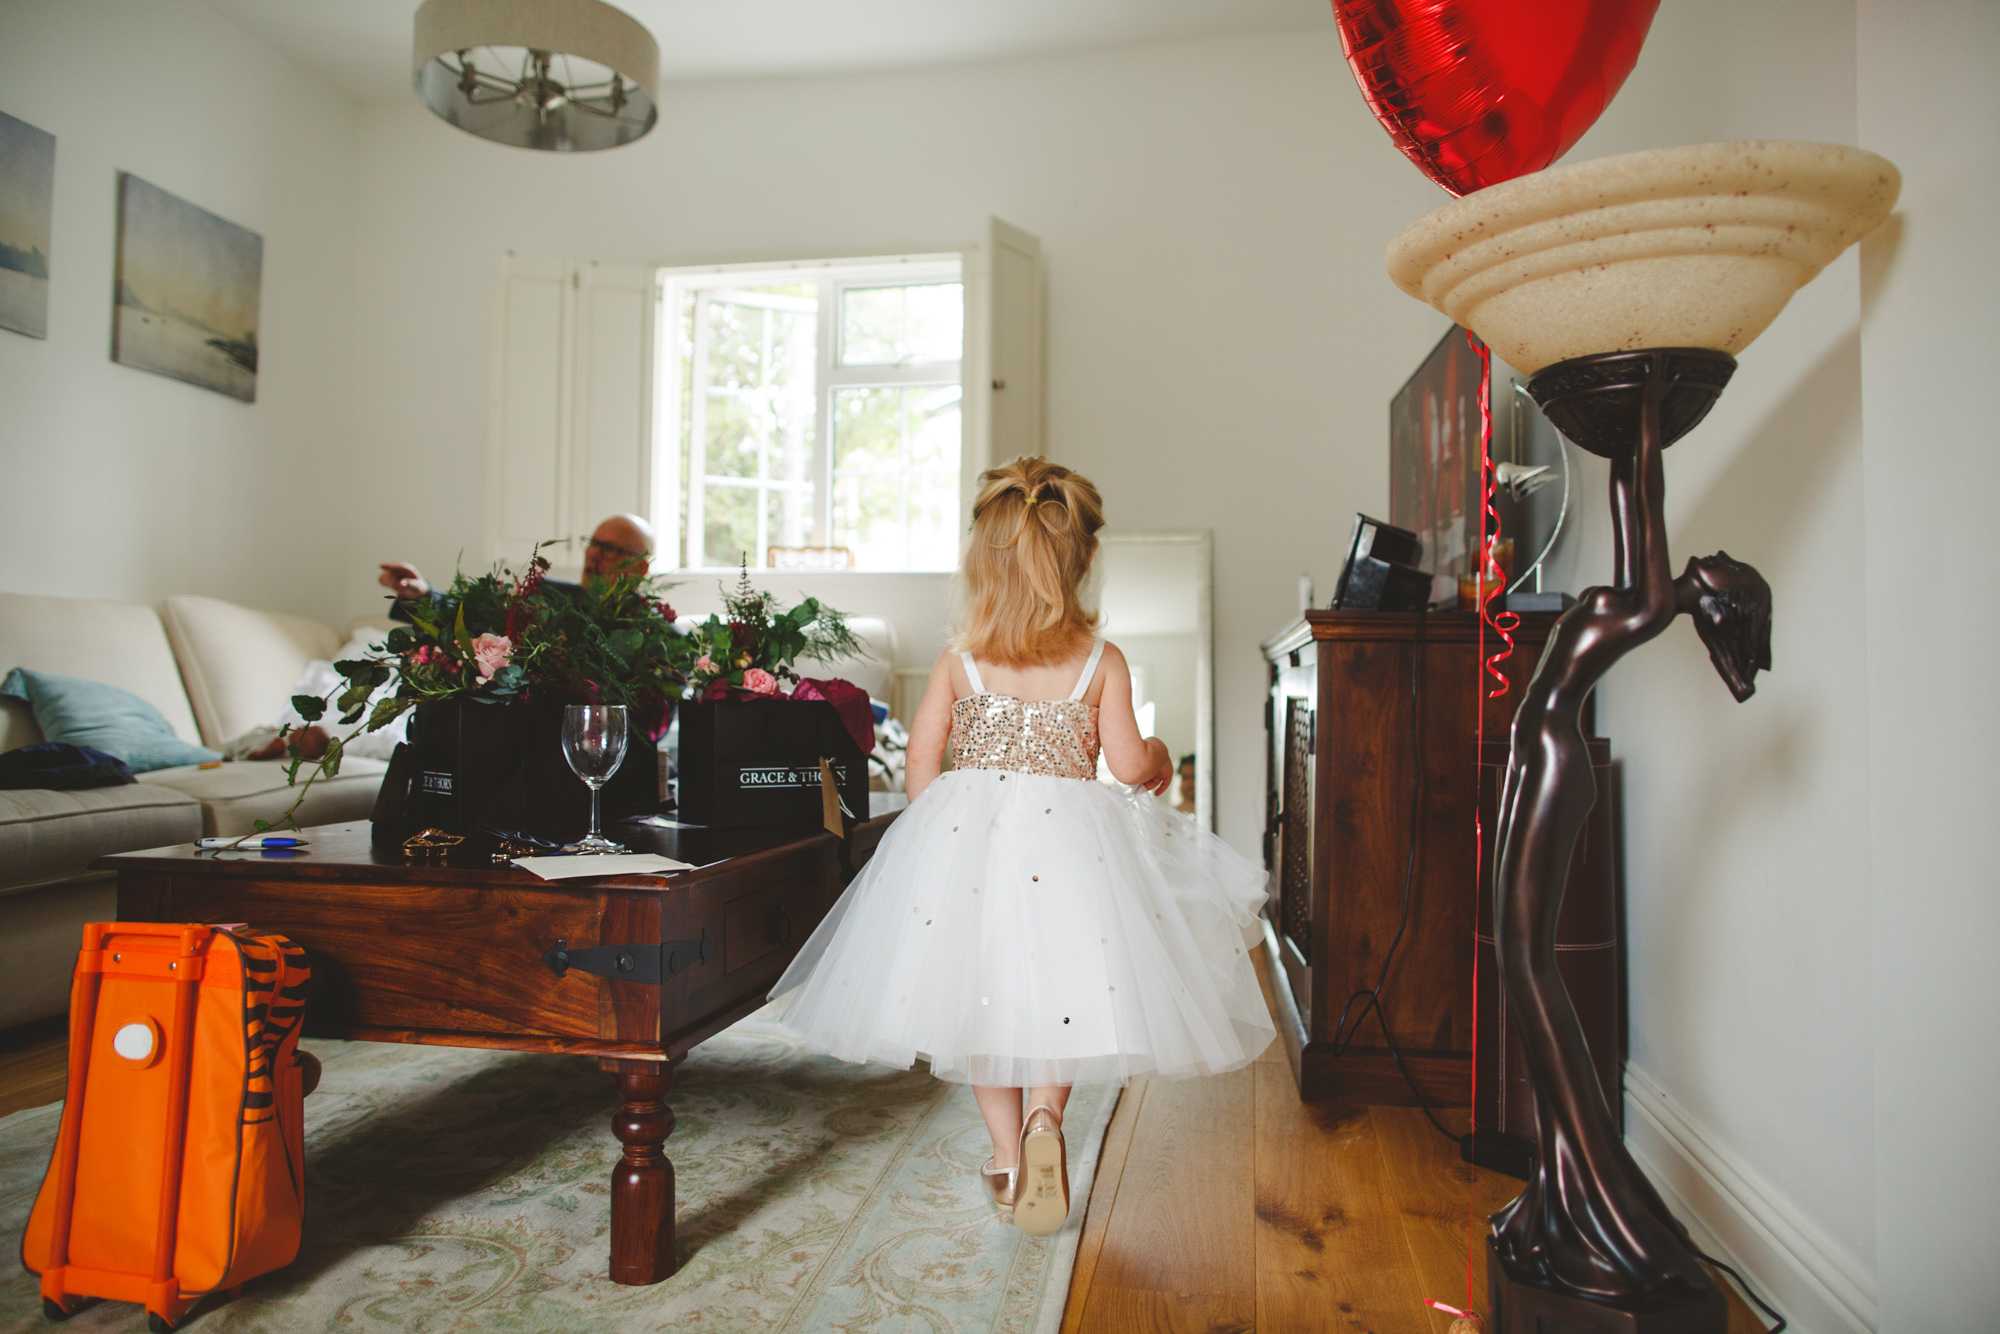 flower girl at london wedding in vintage dress photo